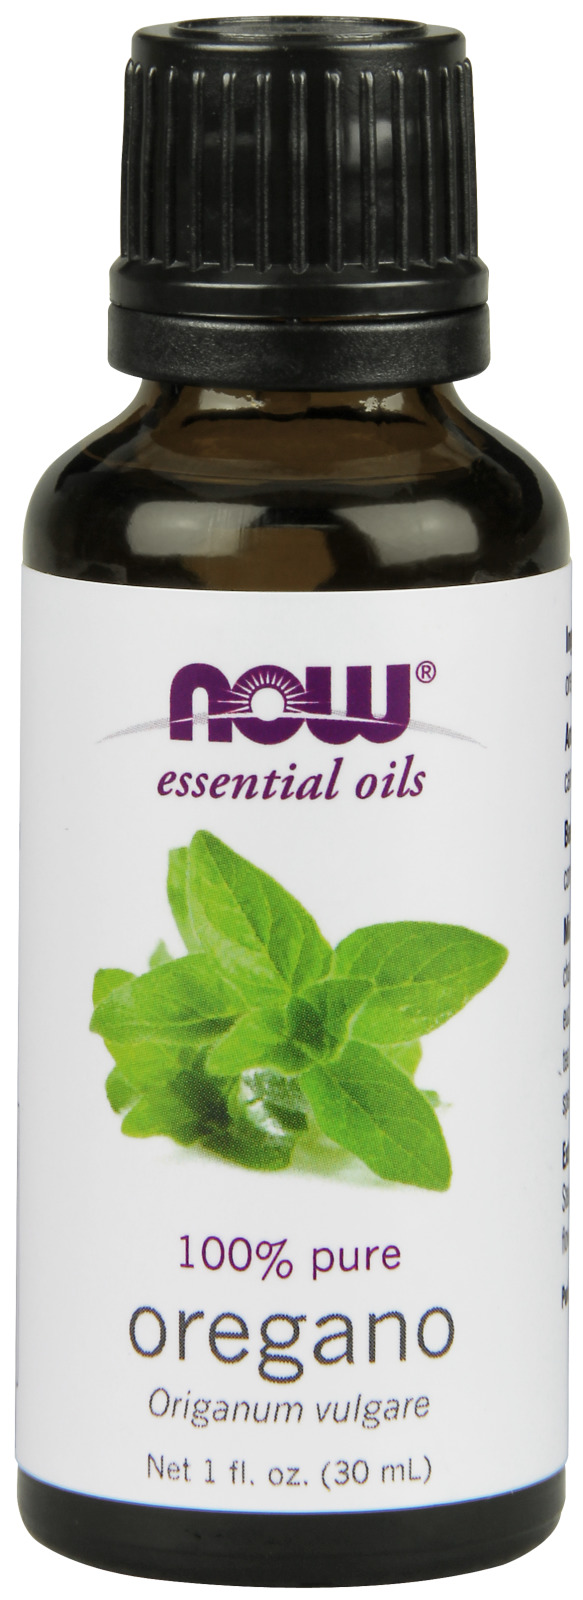 Oregano Oil 1 fl oz (30 ml) by NOW